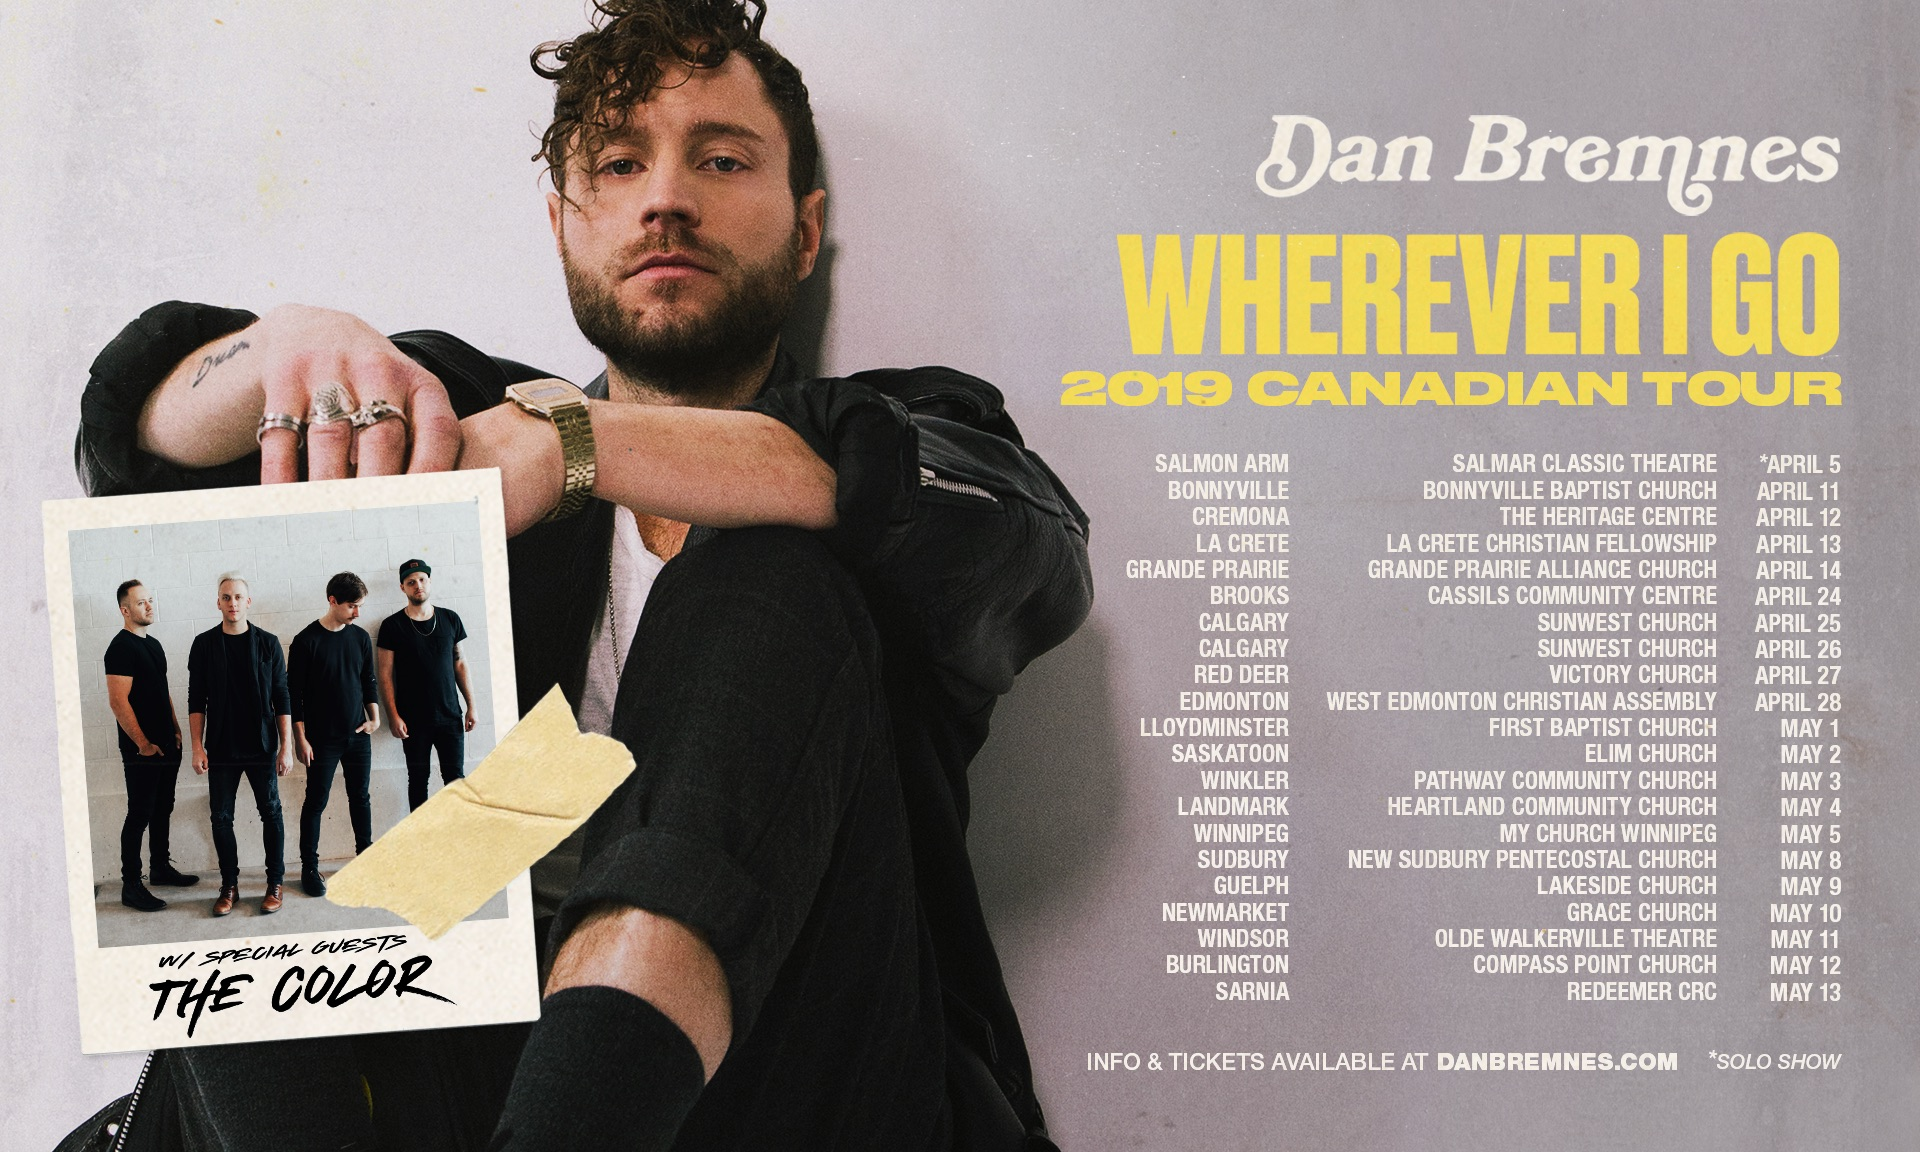 Tickets for Dan Bremnes, Wherever I Go Tour with The Color in Sudbury from BuzzTix